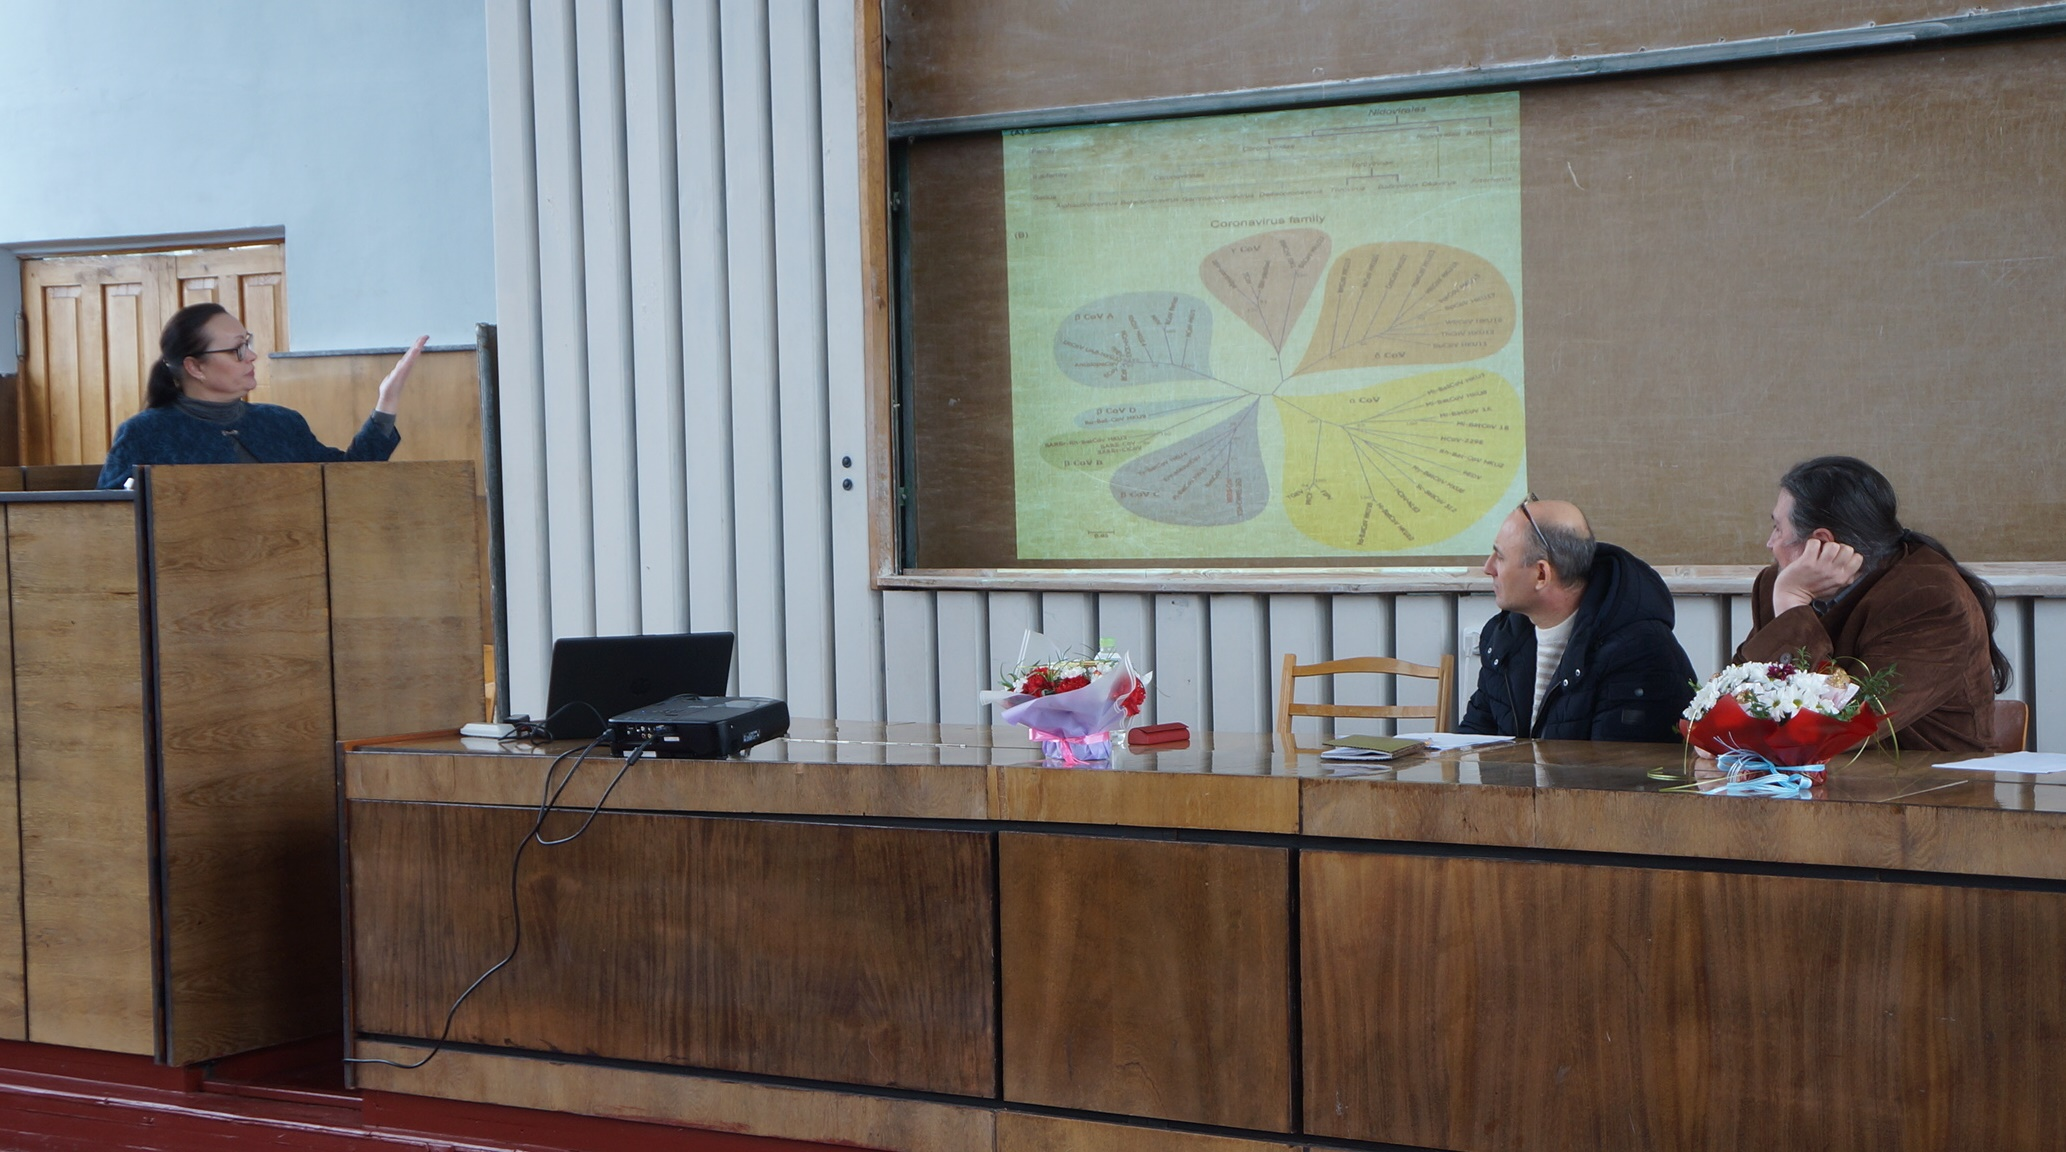 conference_26.02.2020_07